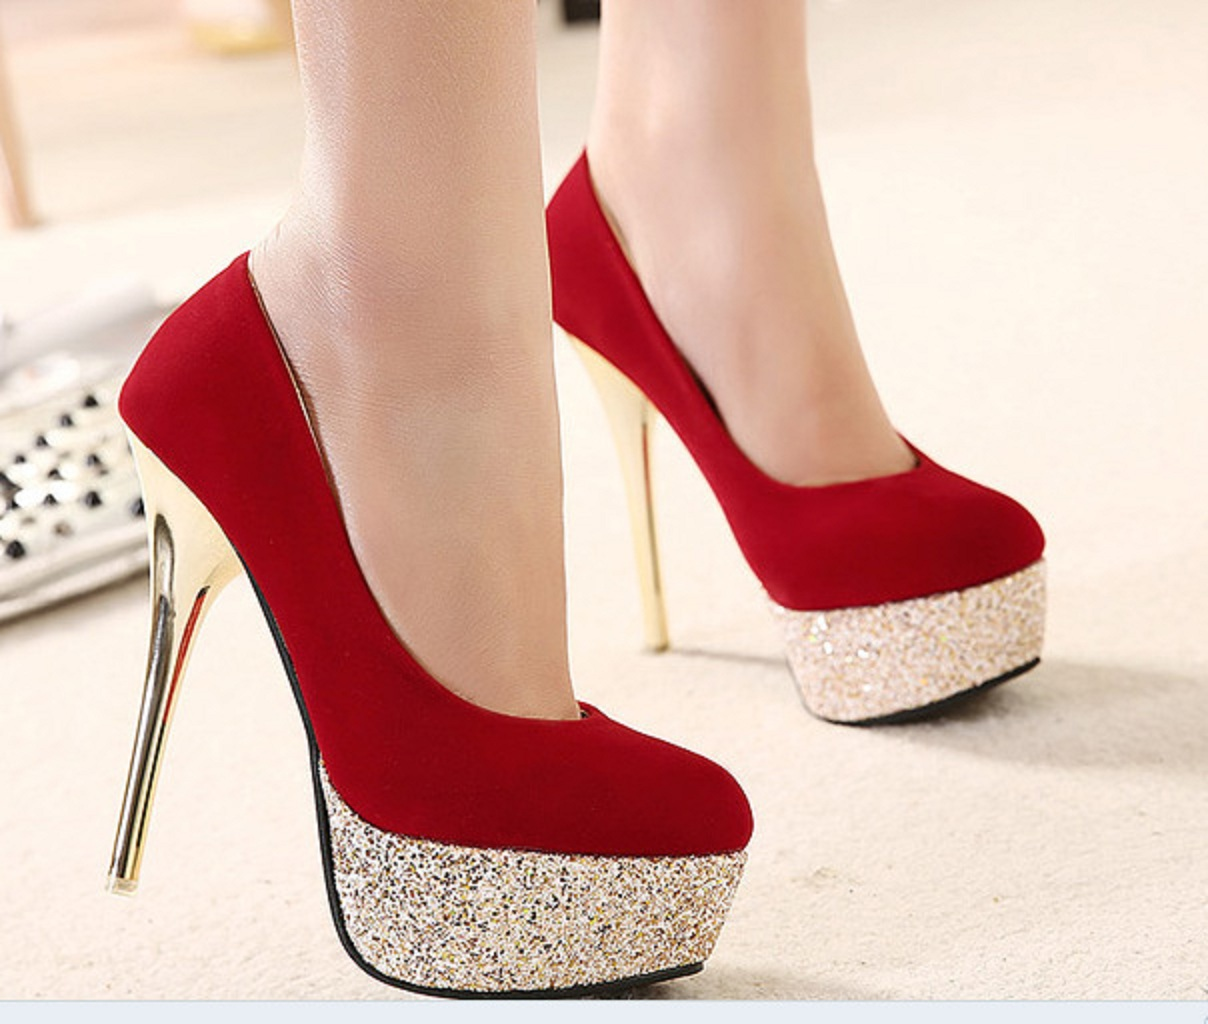 Pics Of High Heel Shoes